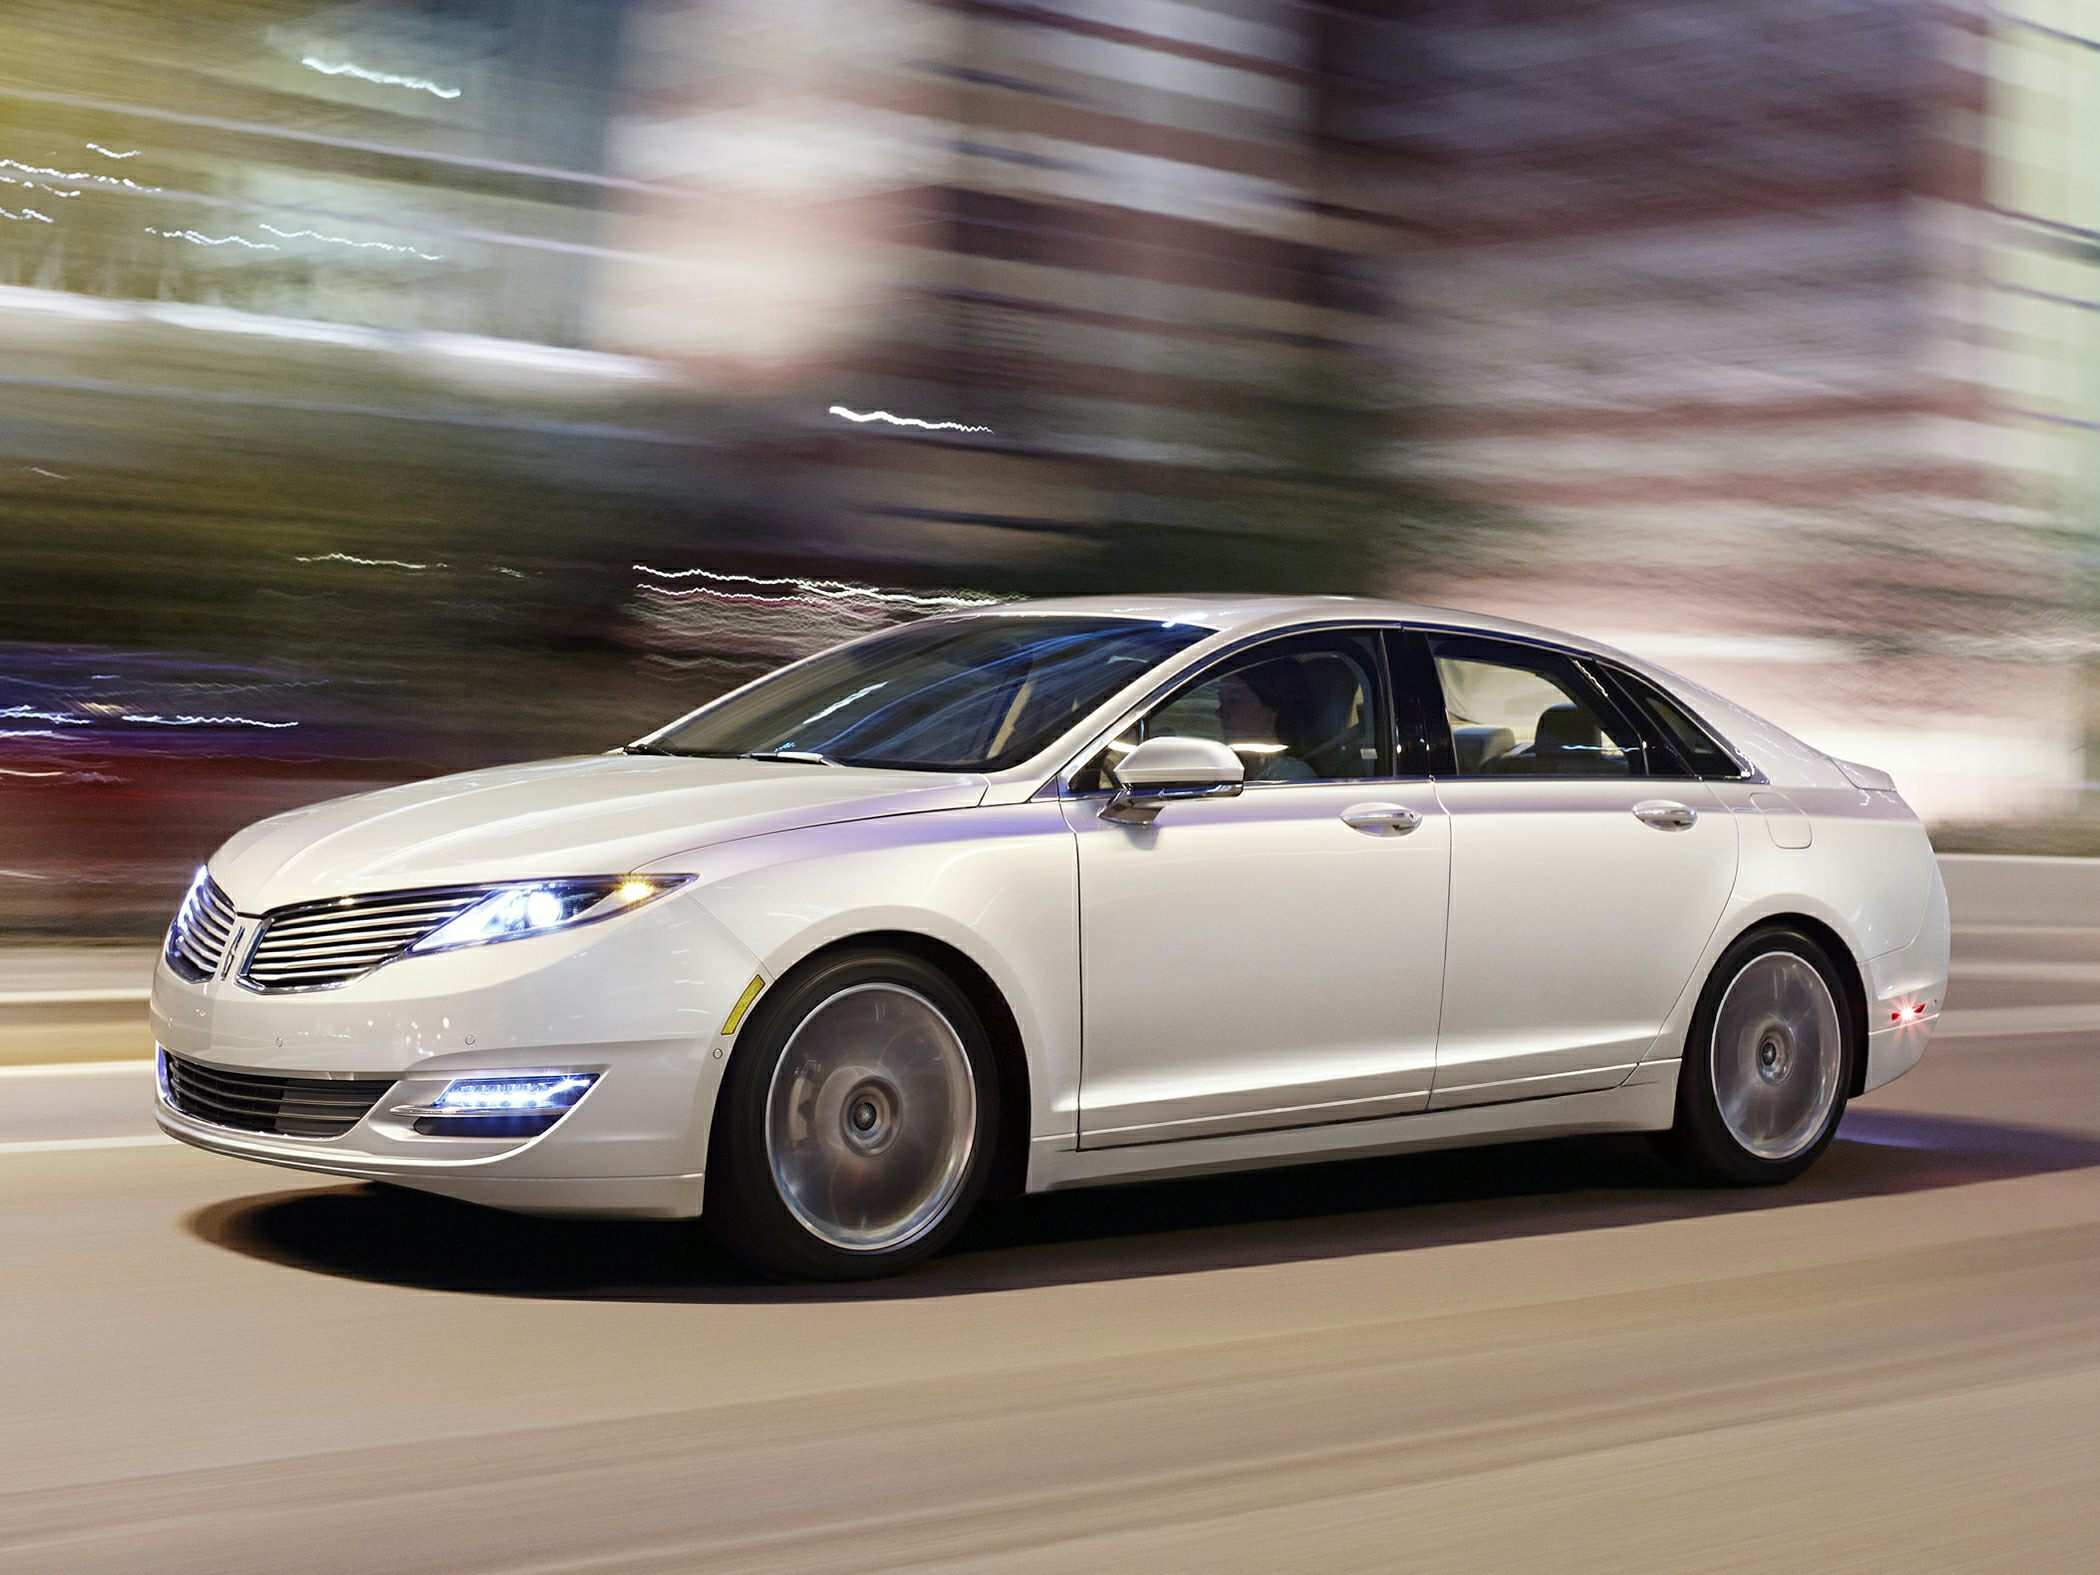 2014 Lincoln Mkz #3